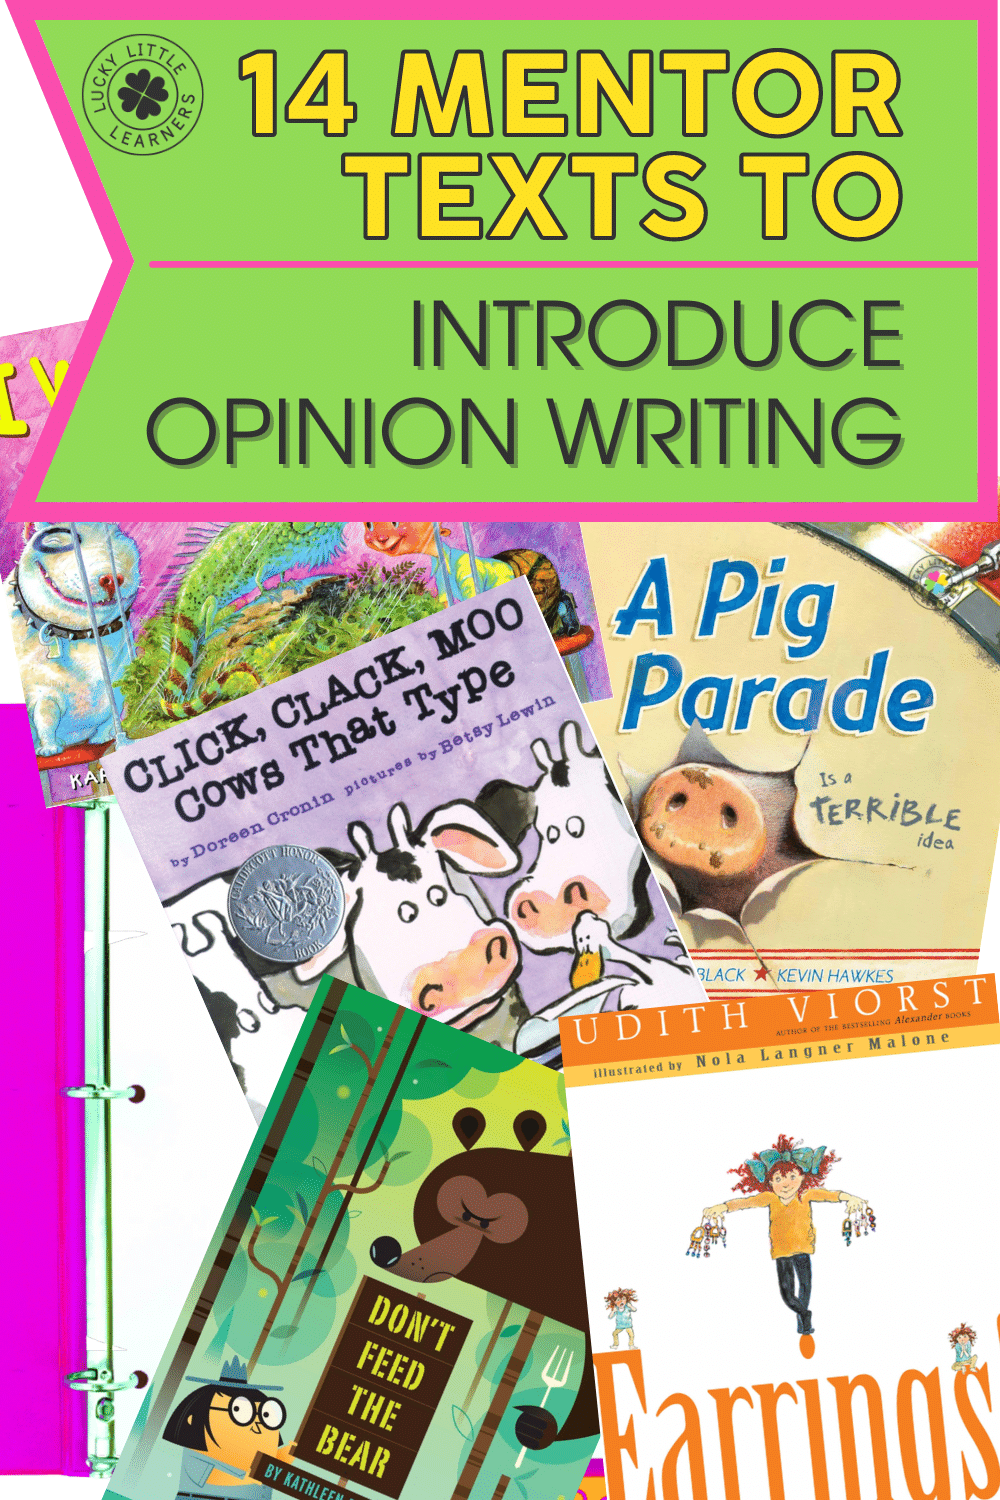 14 Mentor Texts to Introduce Opinion Writing to Young Learners